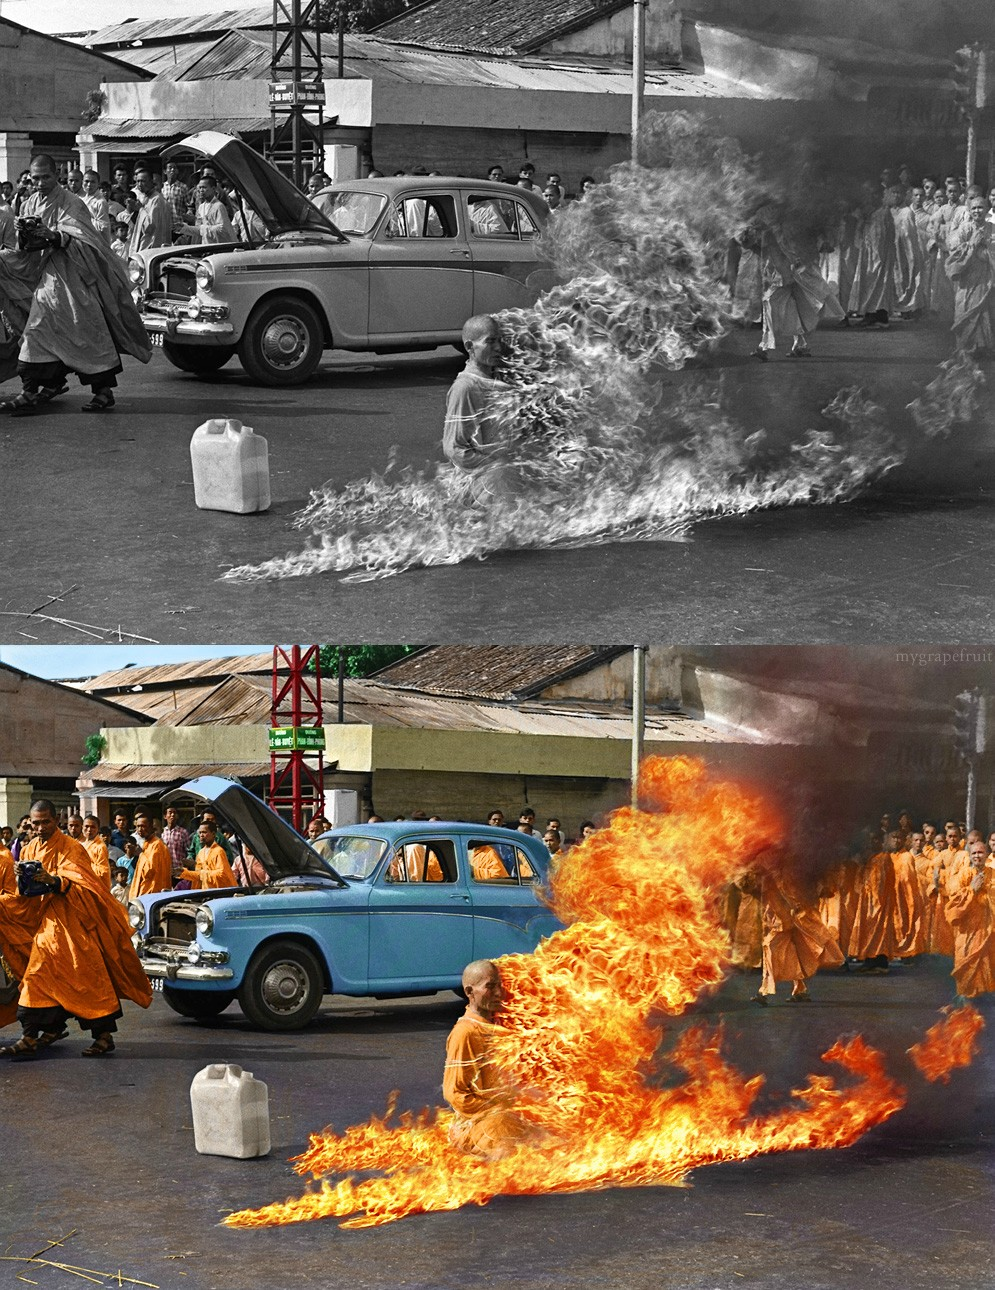 Thich Quang Duc was born in 1897 and was a Vietnamese Buddhist monk. He burned himself to death on a busy street in Saigon on June 11, 1963 as a protest against South Vietnam's persecution of Buddhists. ~ Photographed by Malcom Browne.